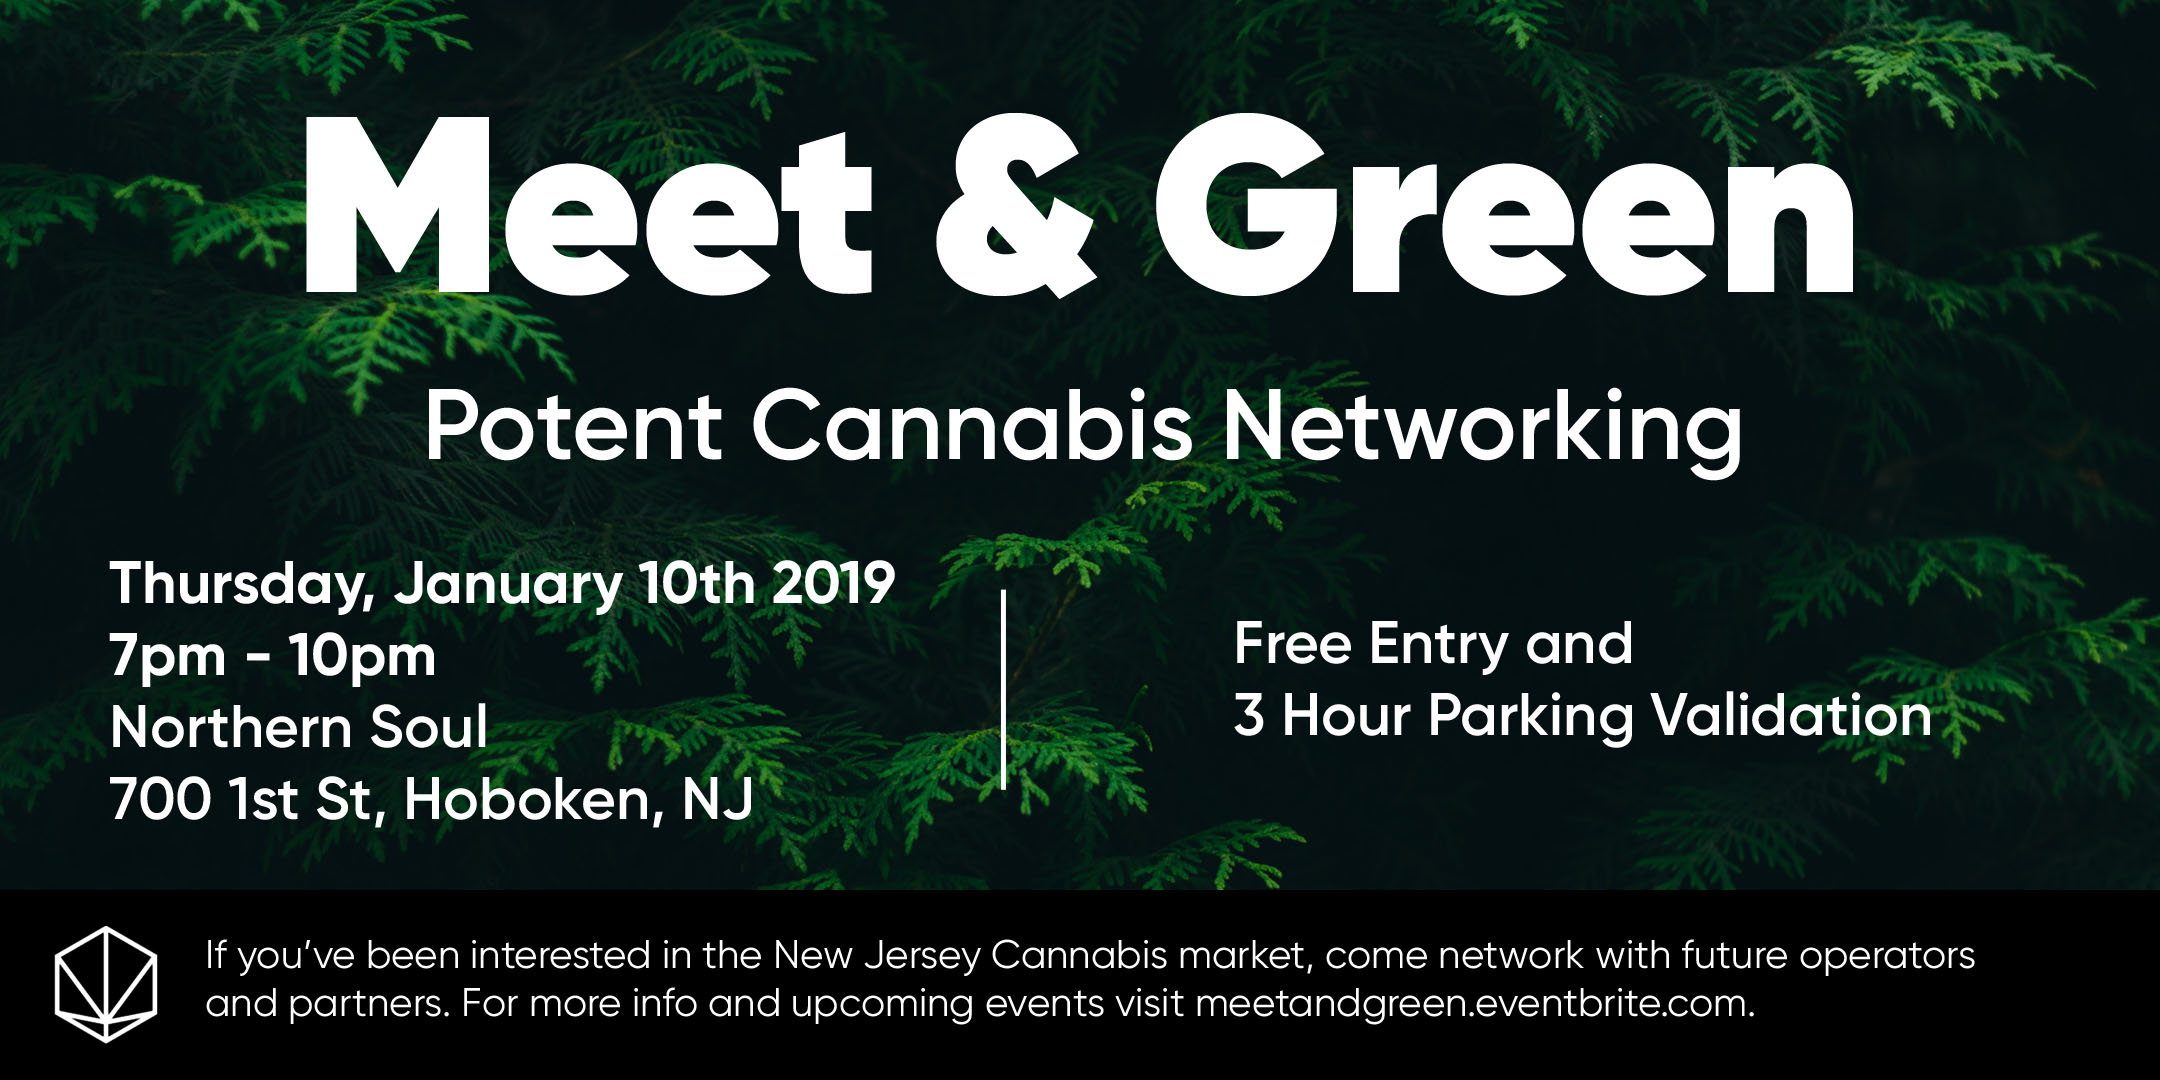 New Jersey Cannabis Networking